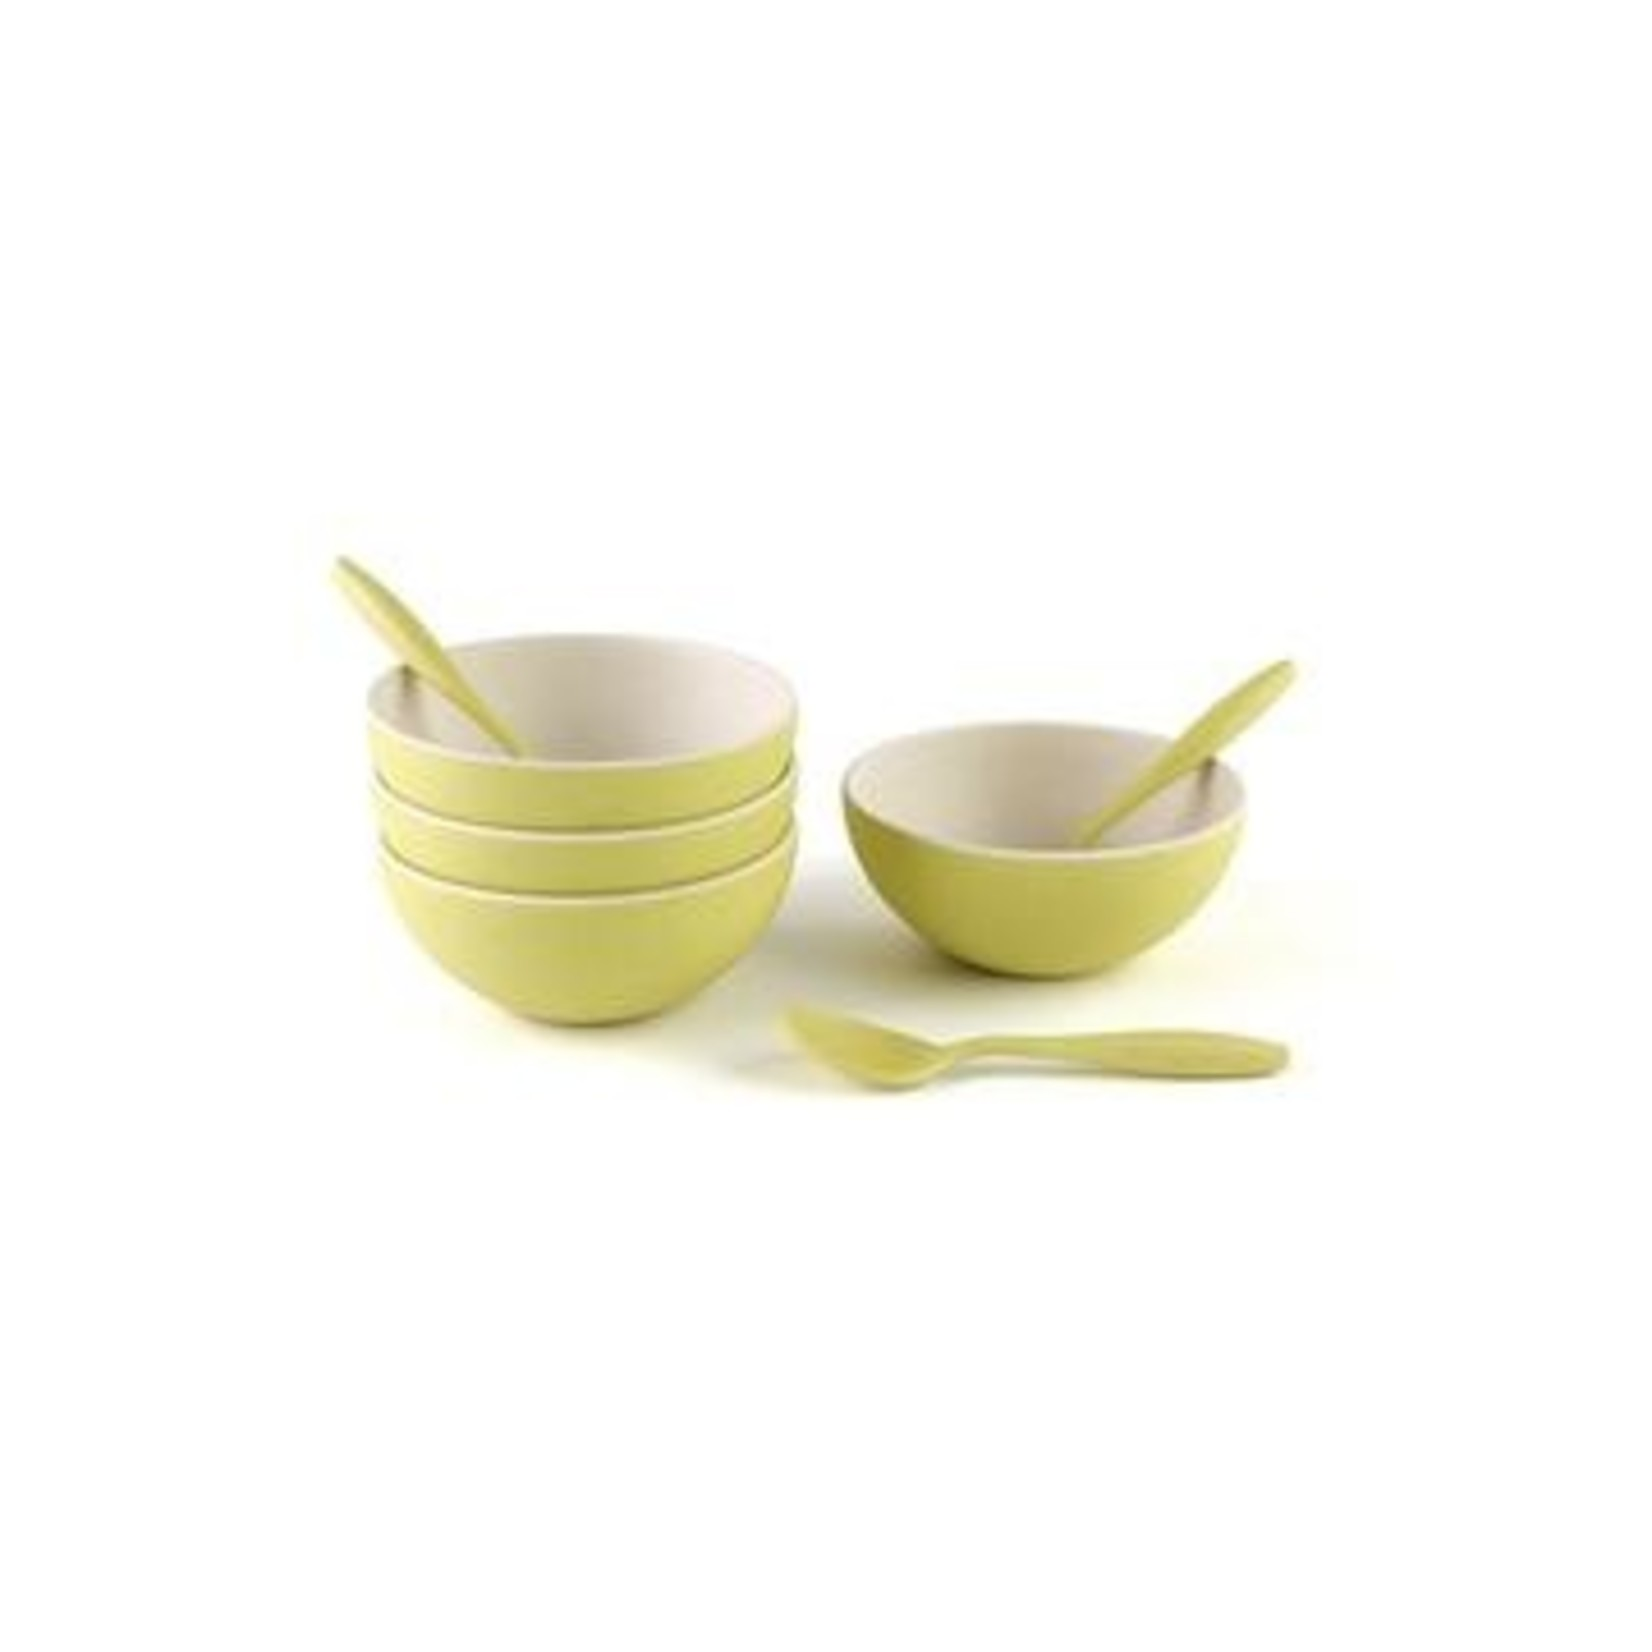 Petersons Housewares Peterson small bowl/spoon Yellow